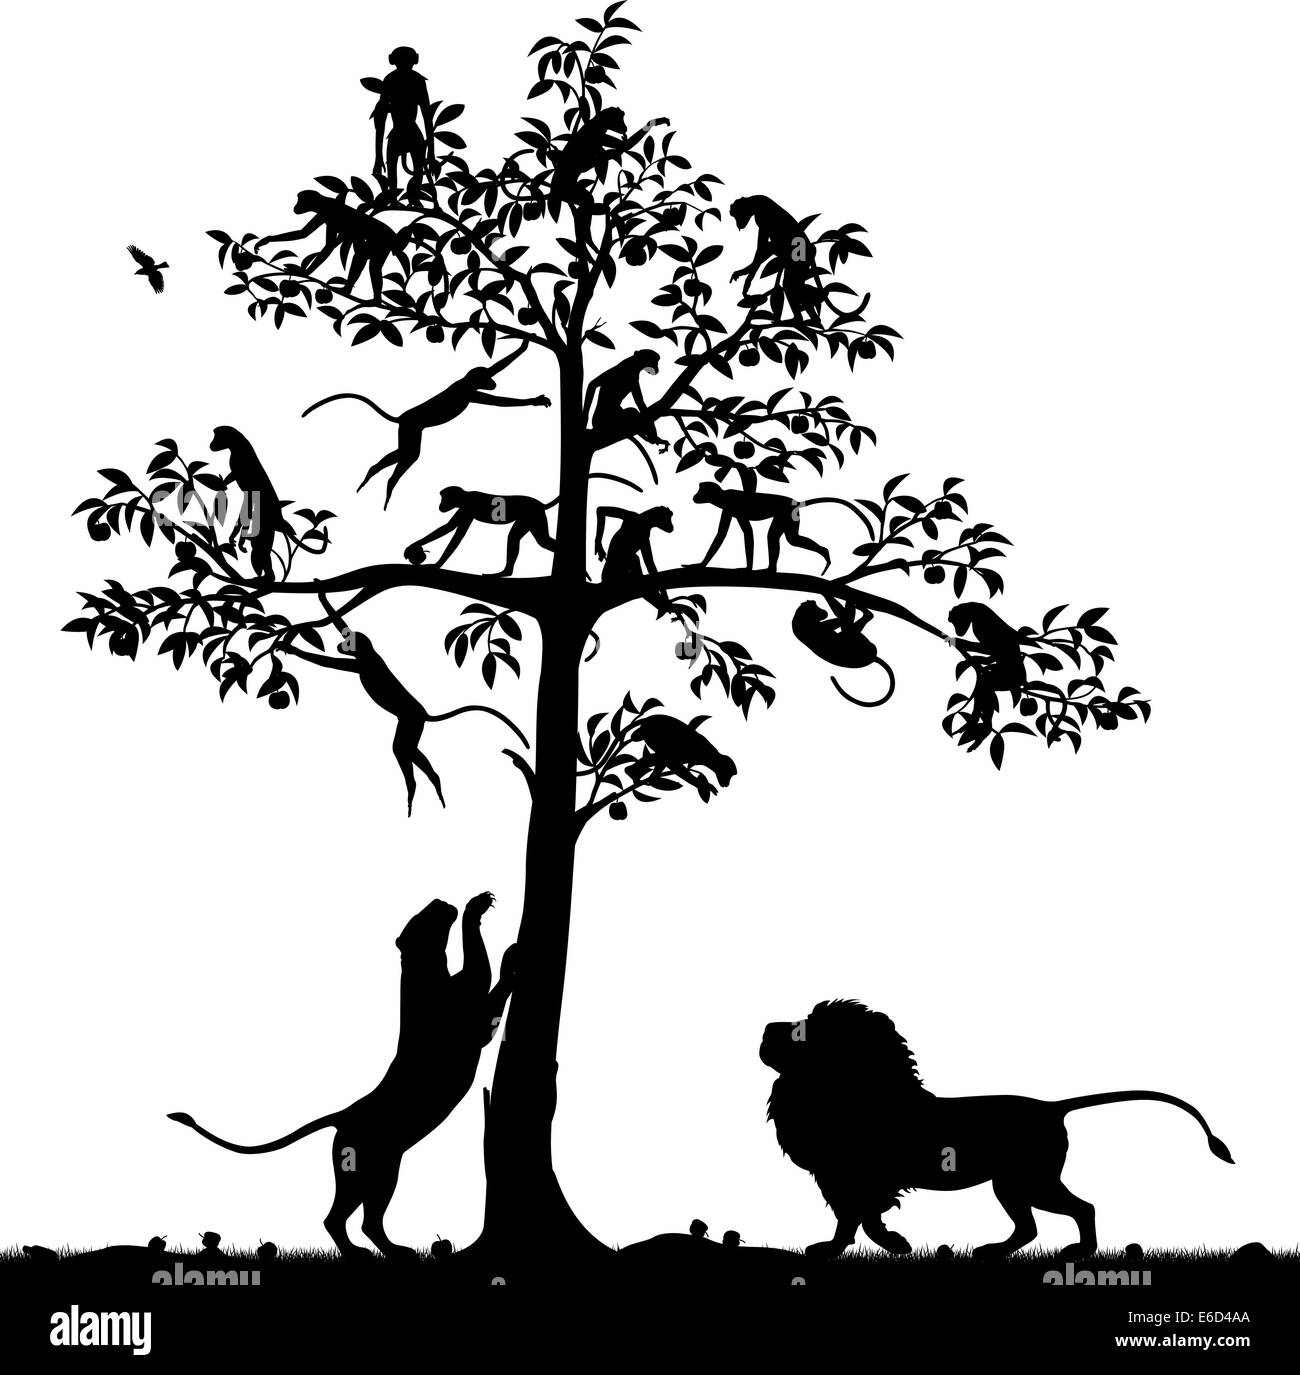 Editable vector silhouette of monkeys in a tree and a pair of lions below with all figures as separate objects - Stock Vector